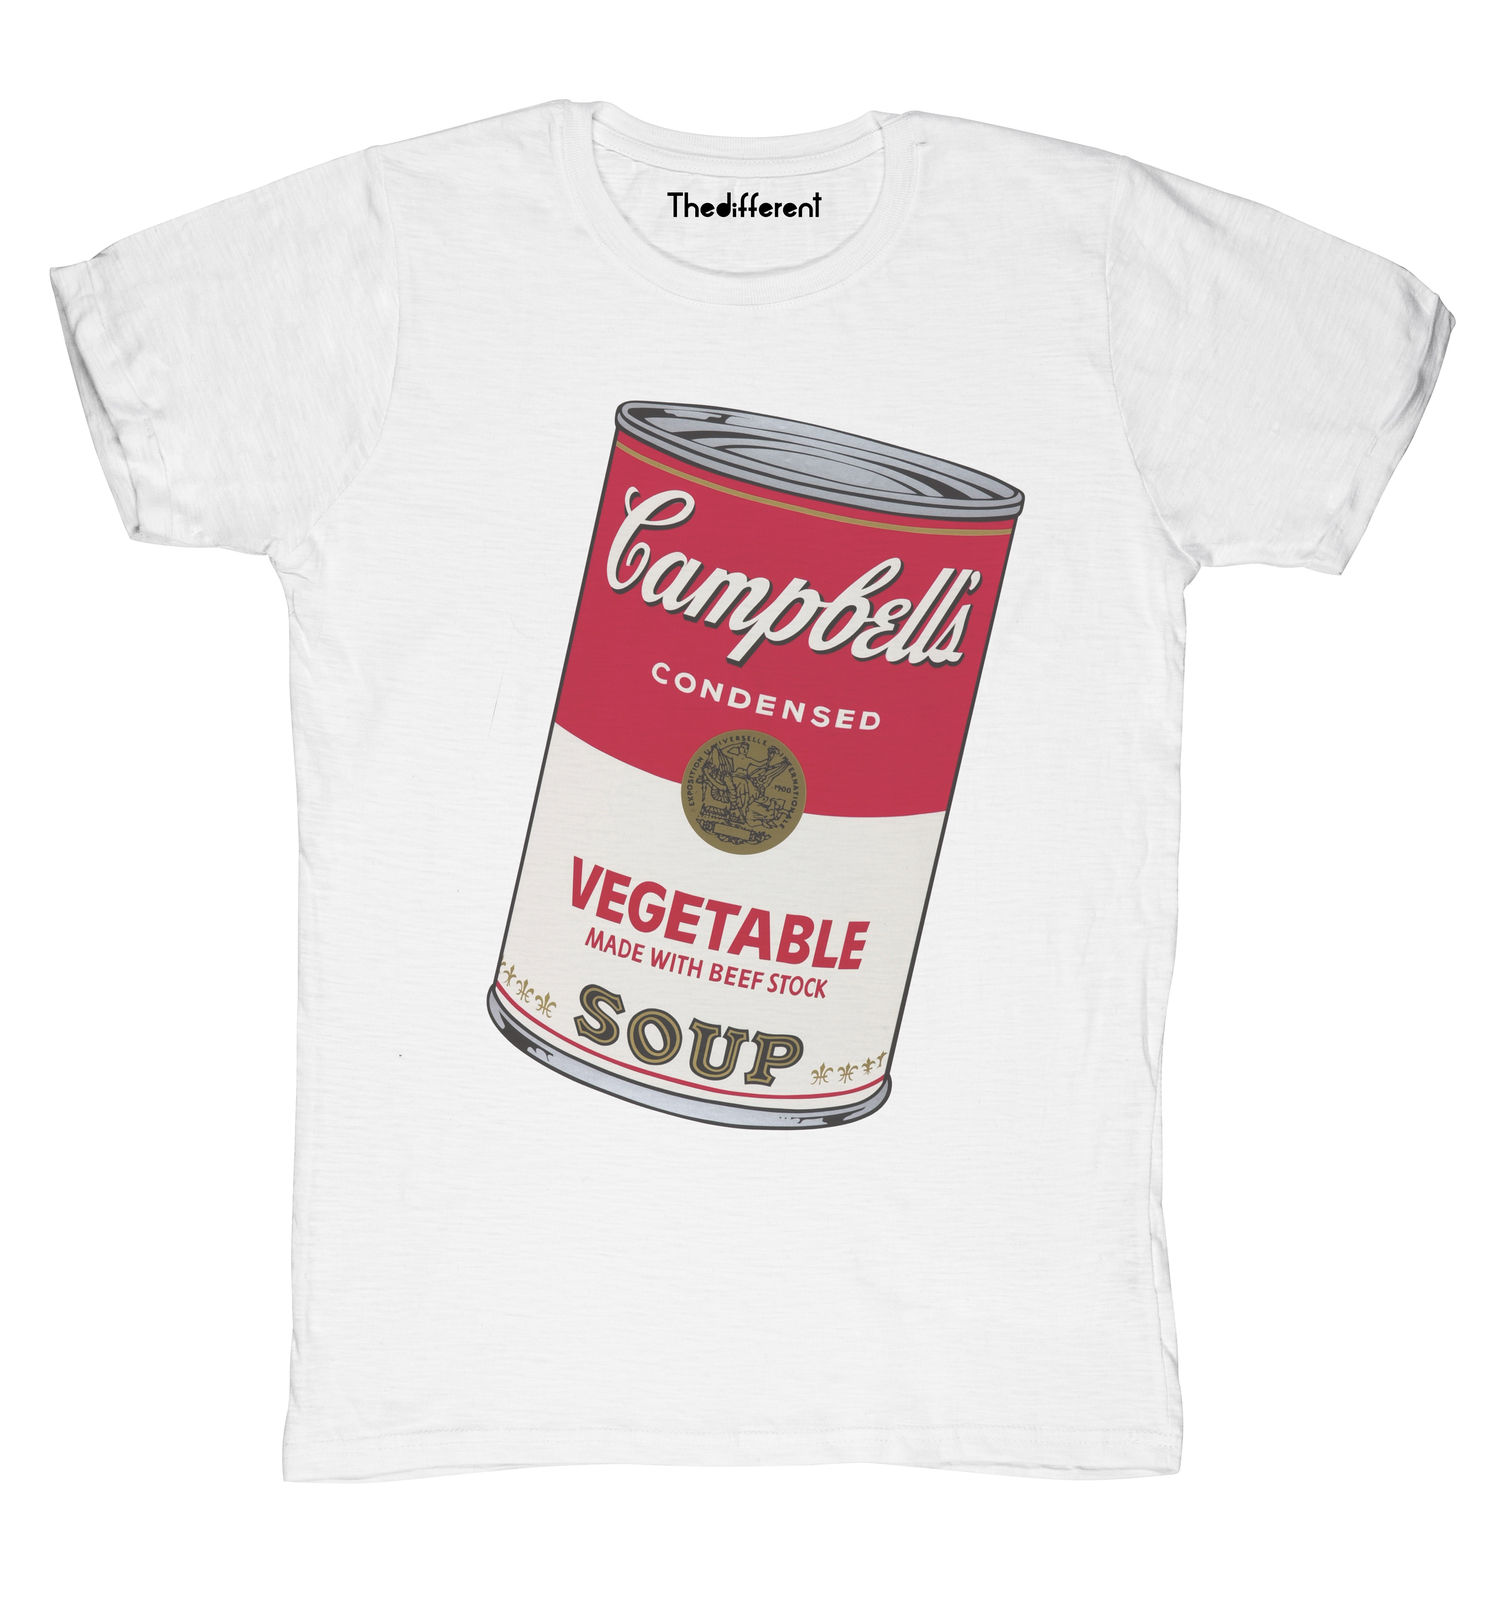 New T-Shirt Blaze Man Soup cans Soup Gift Idea image